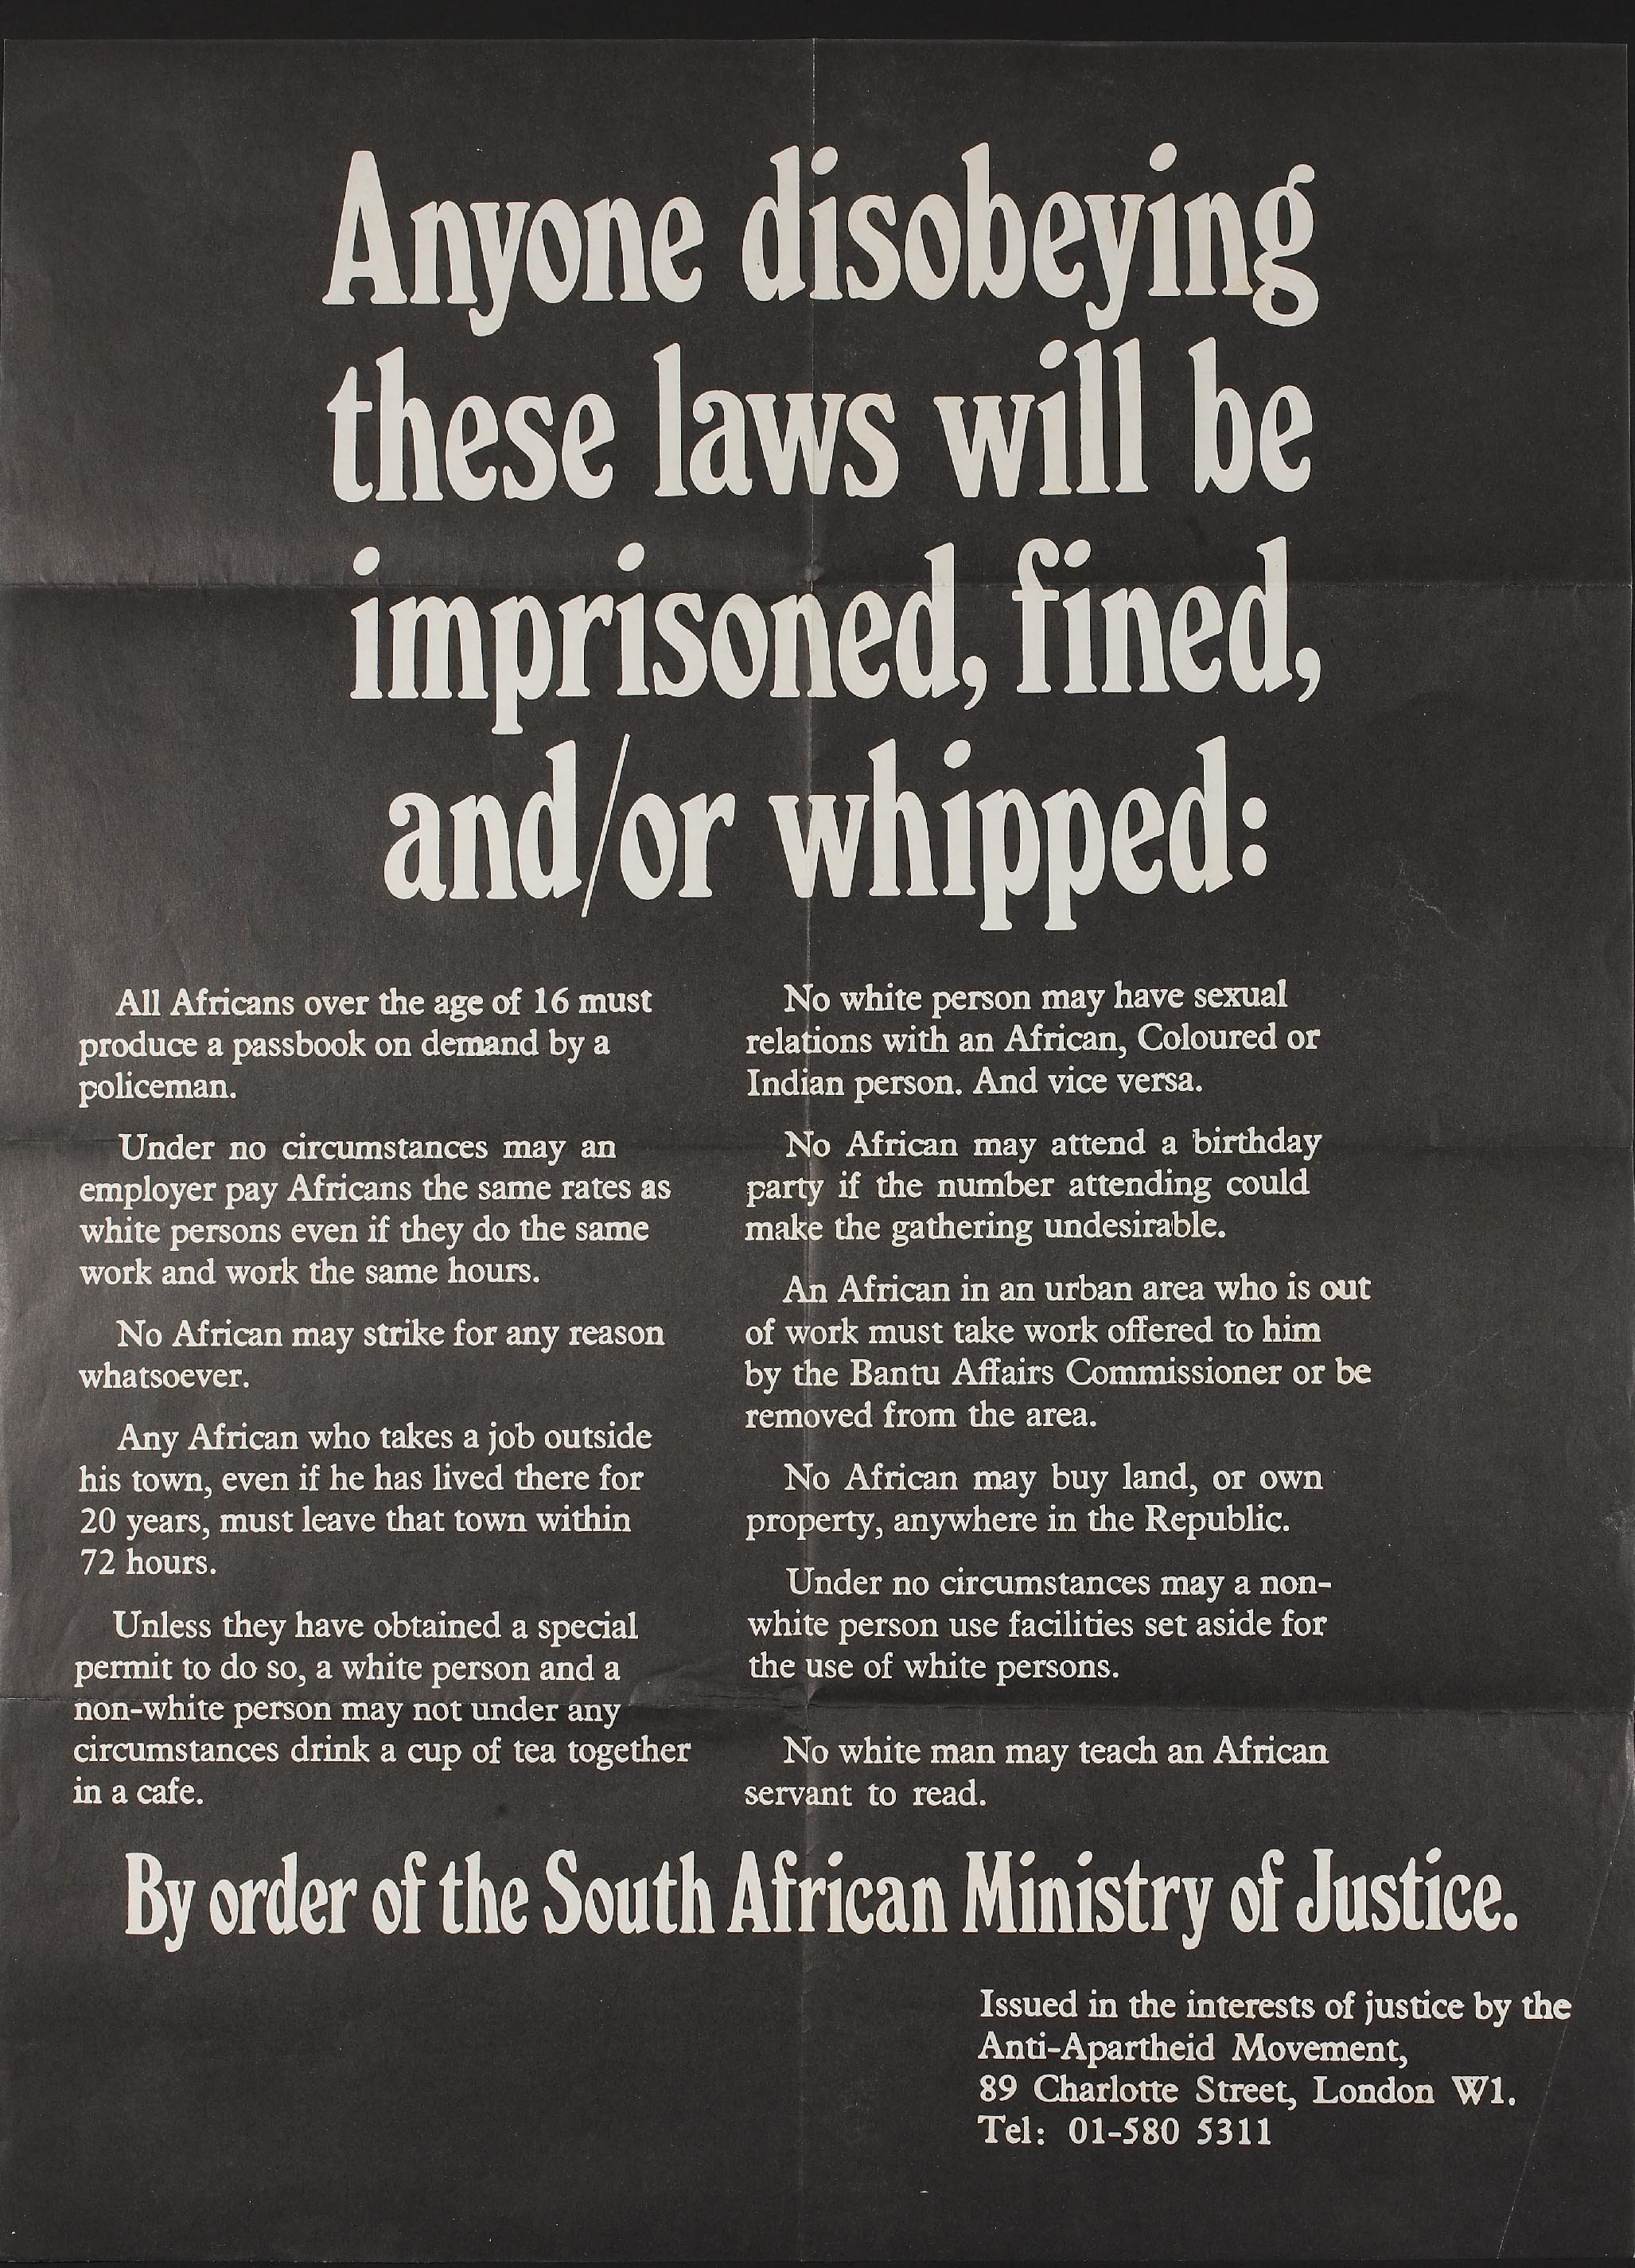 apartheid laws essay Apartheid was created by dr malan, and was introduced in 1948 in south africa it was made to separate the different races within south africa and the apartheid laws would force the black men.